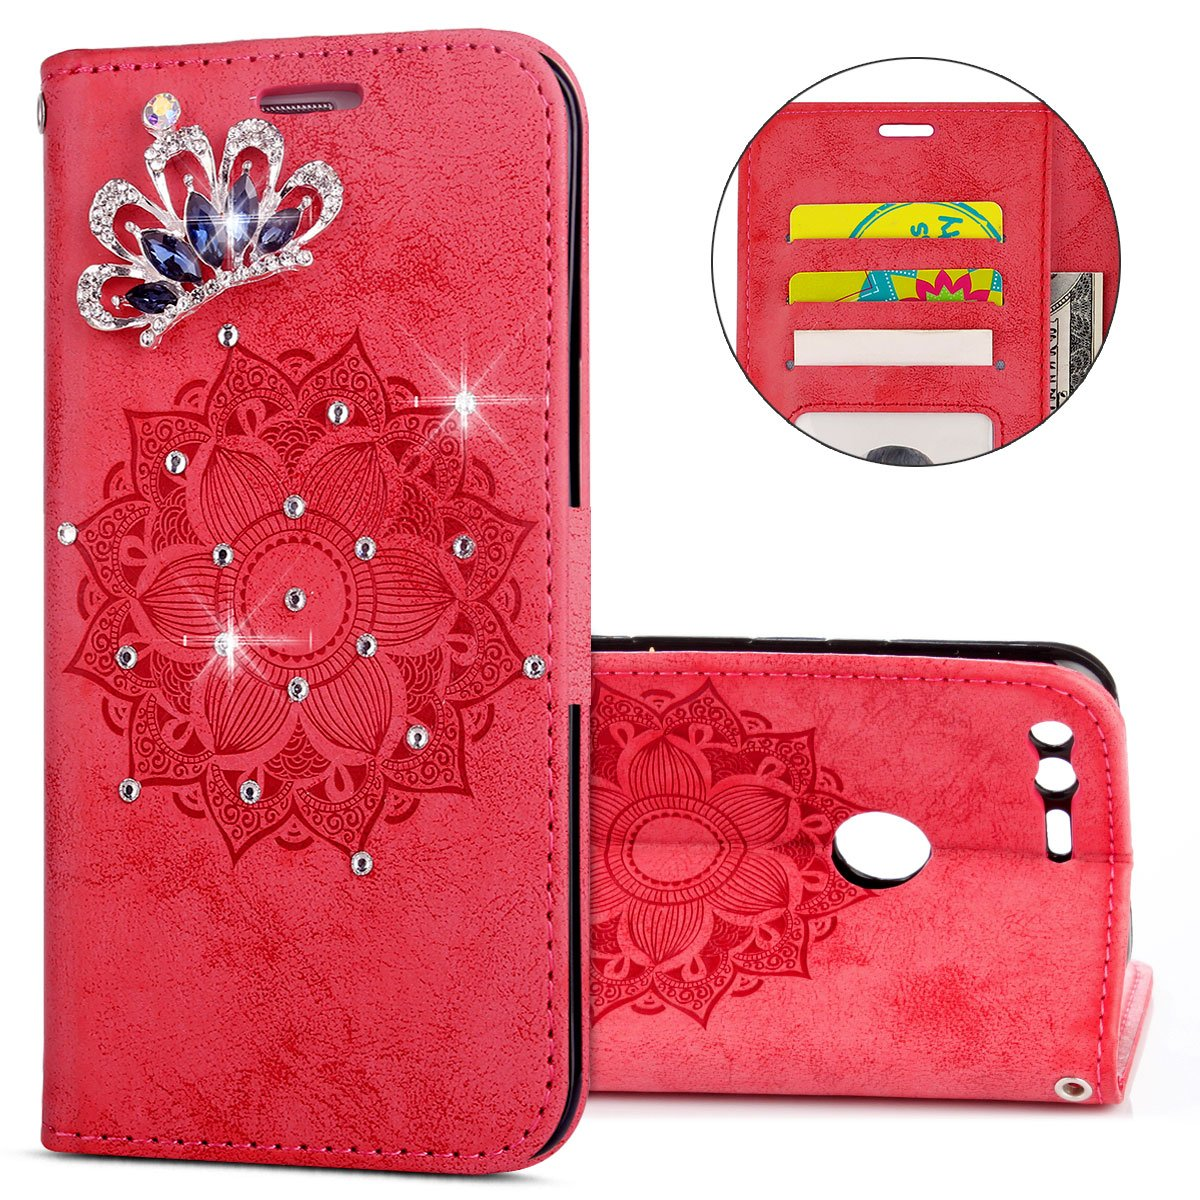 IKASEFU Gooogle Pixel XL Case,3D Clear Crown Rhinestone Diamond Bling Glitter Wallet with Card Holder Emboss Mandala Floral Pu Leather Magnetic Flip Case Protective Cover for Gooogle Pixel XL,Red